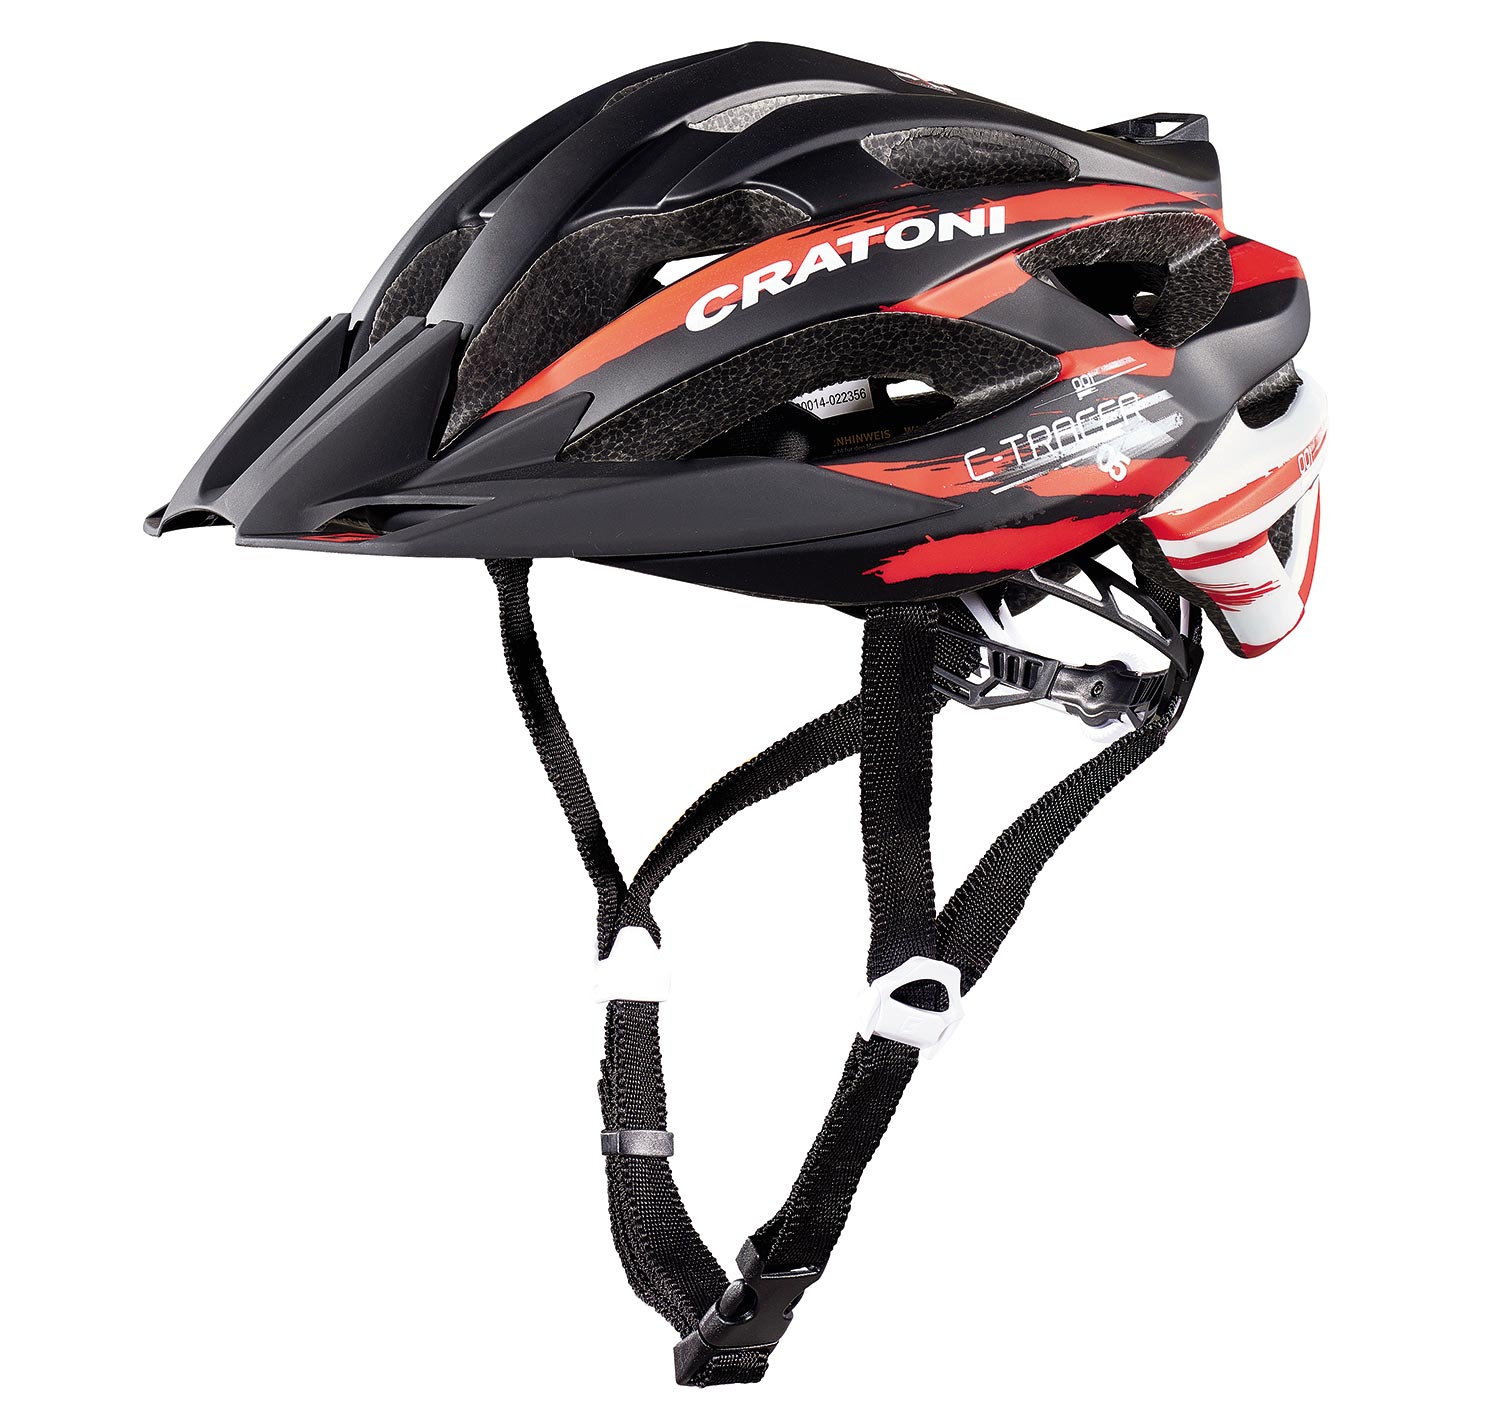 Prilba CRATONI C-Tracer black-red-white rubber